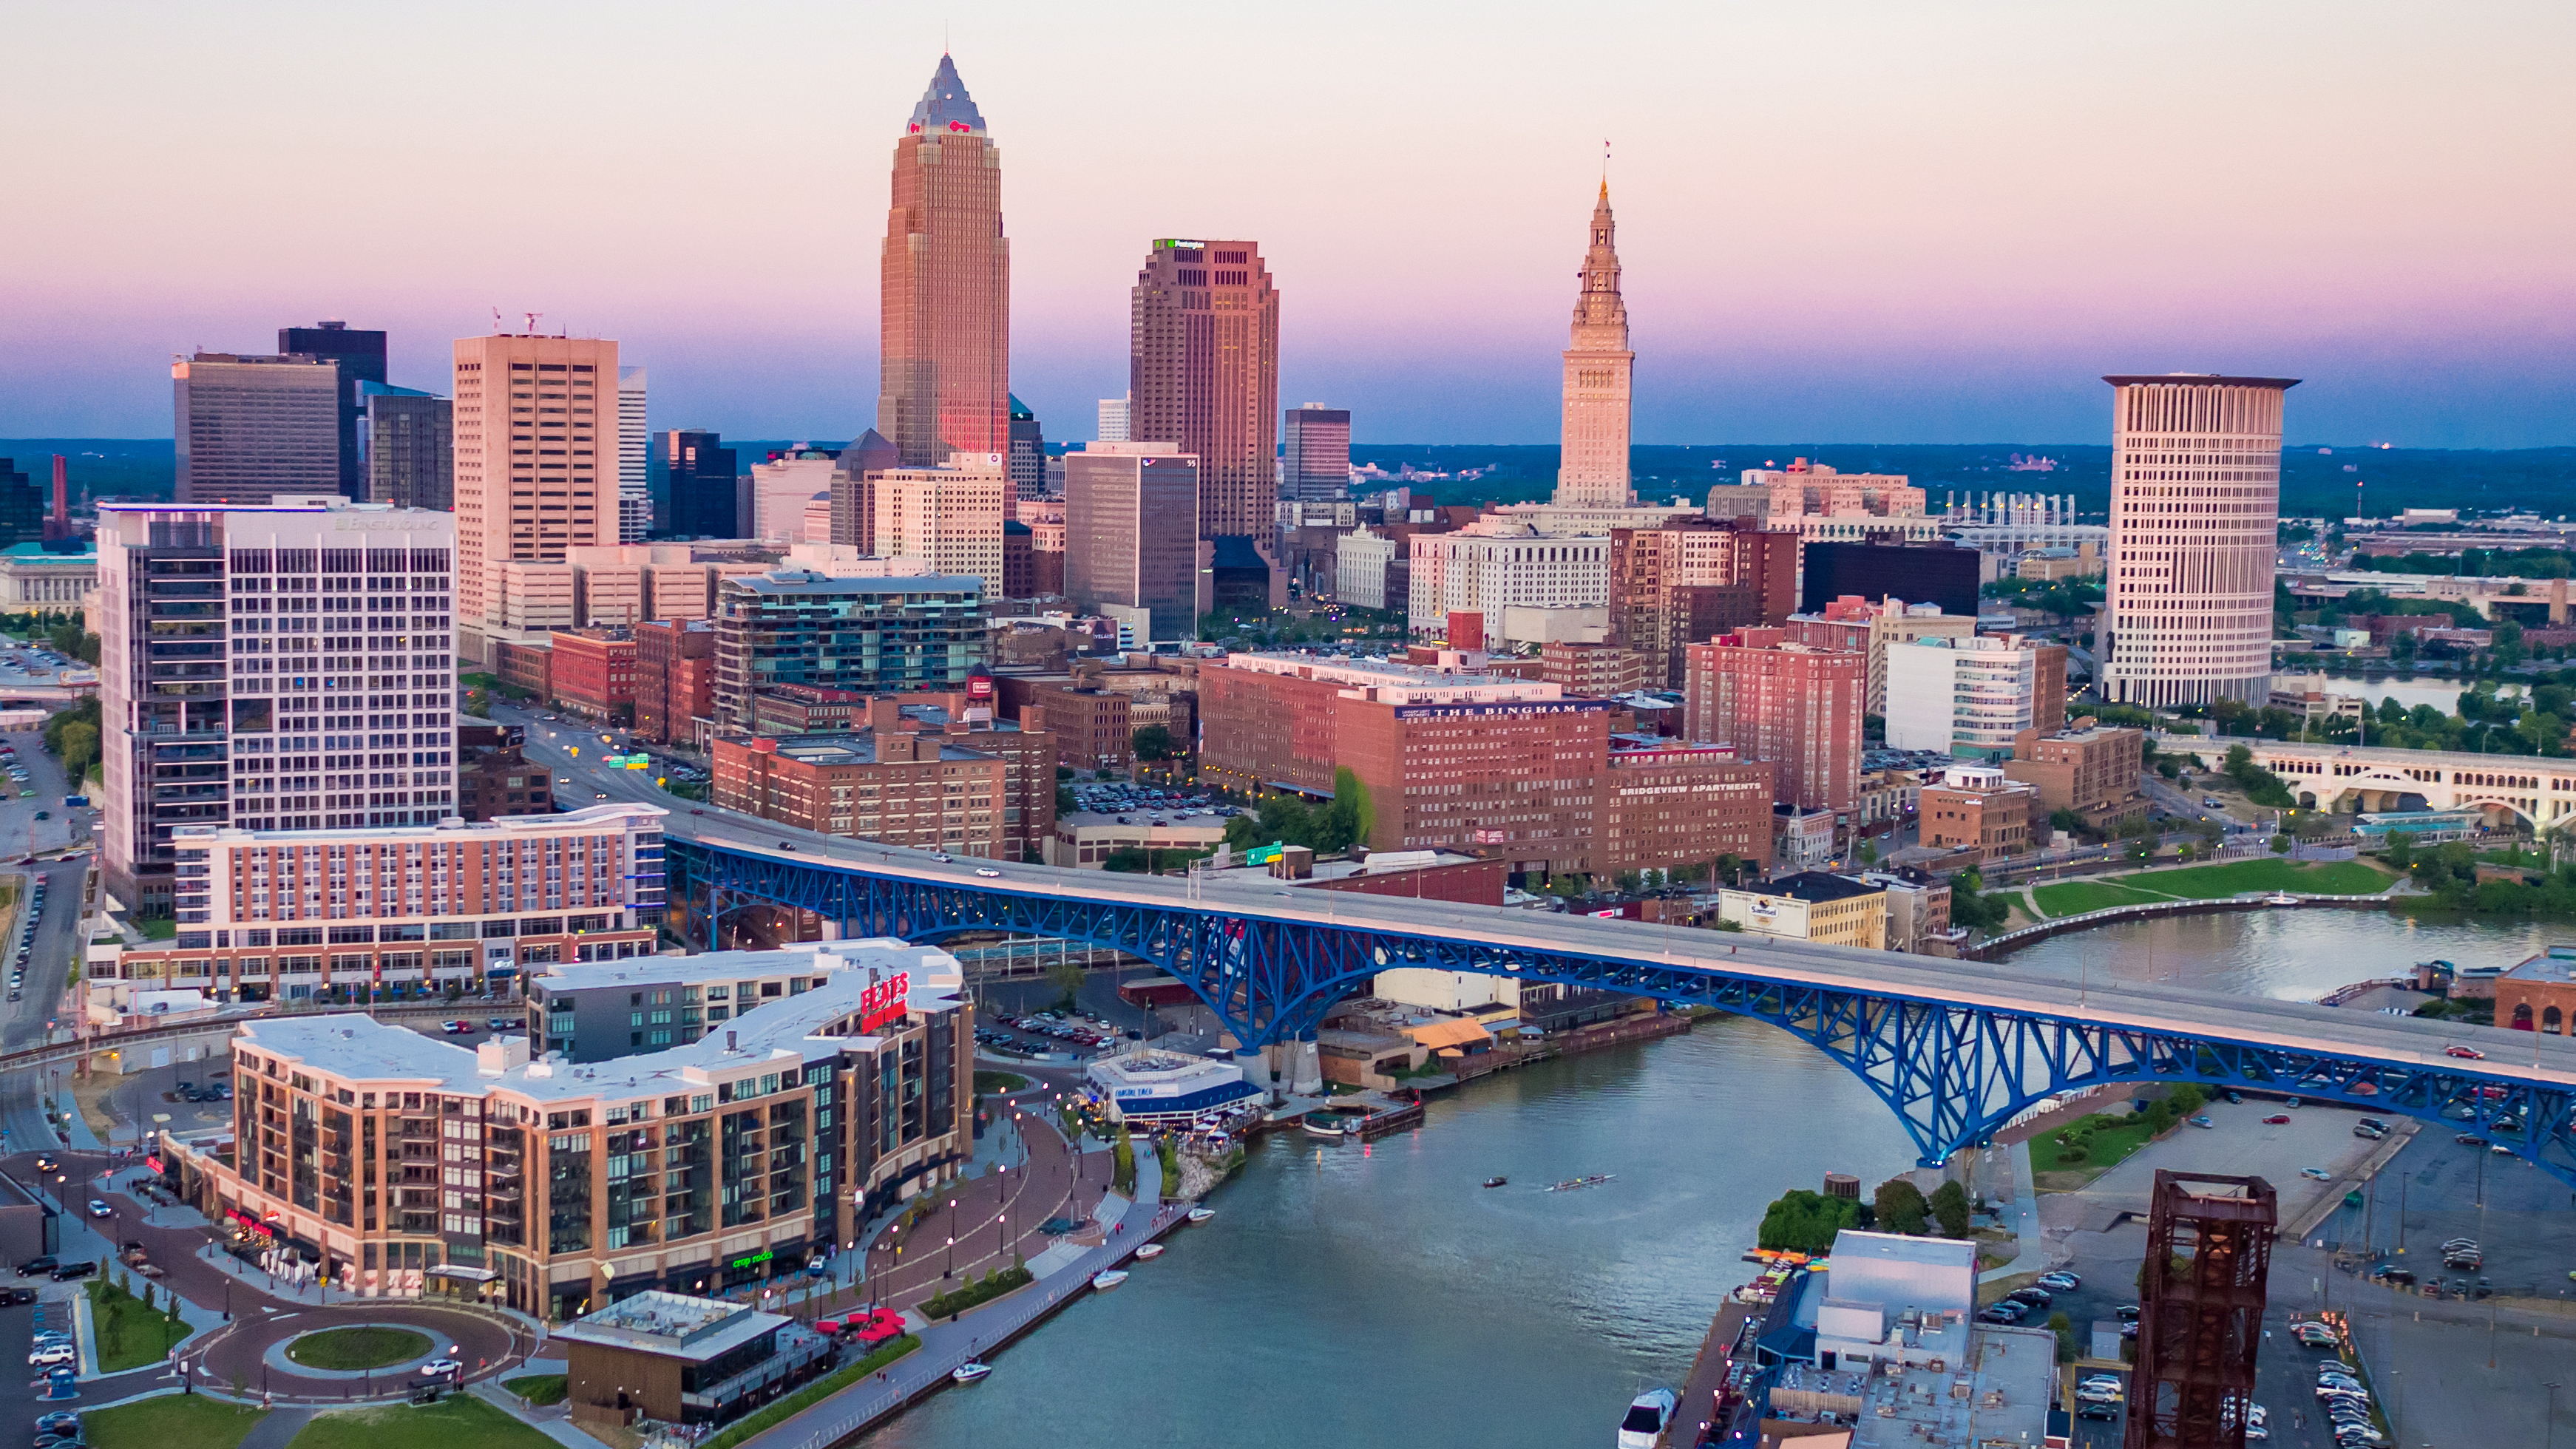 View of the city of Cleveland, Ohio